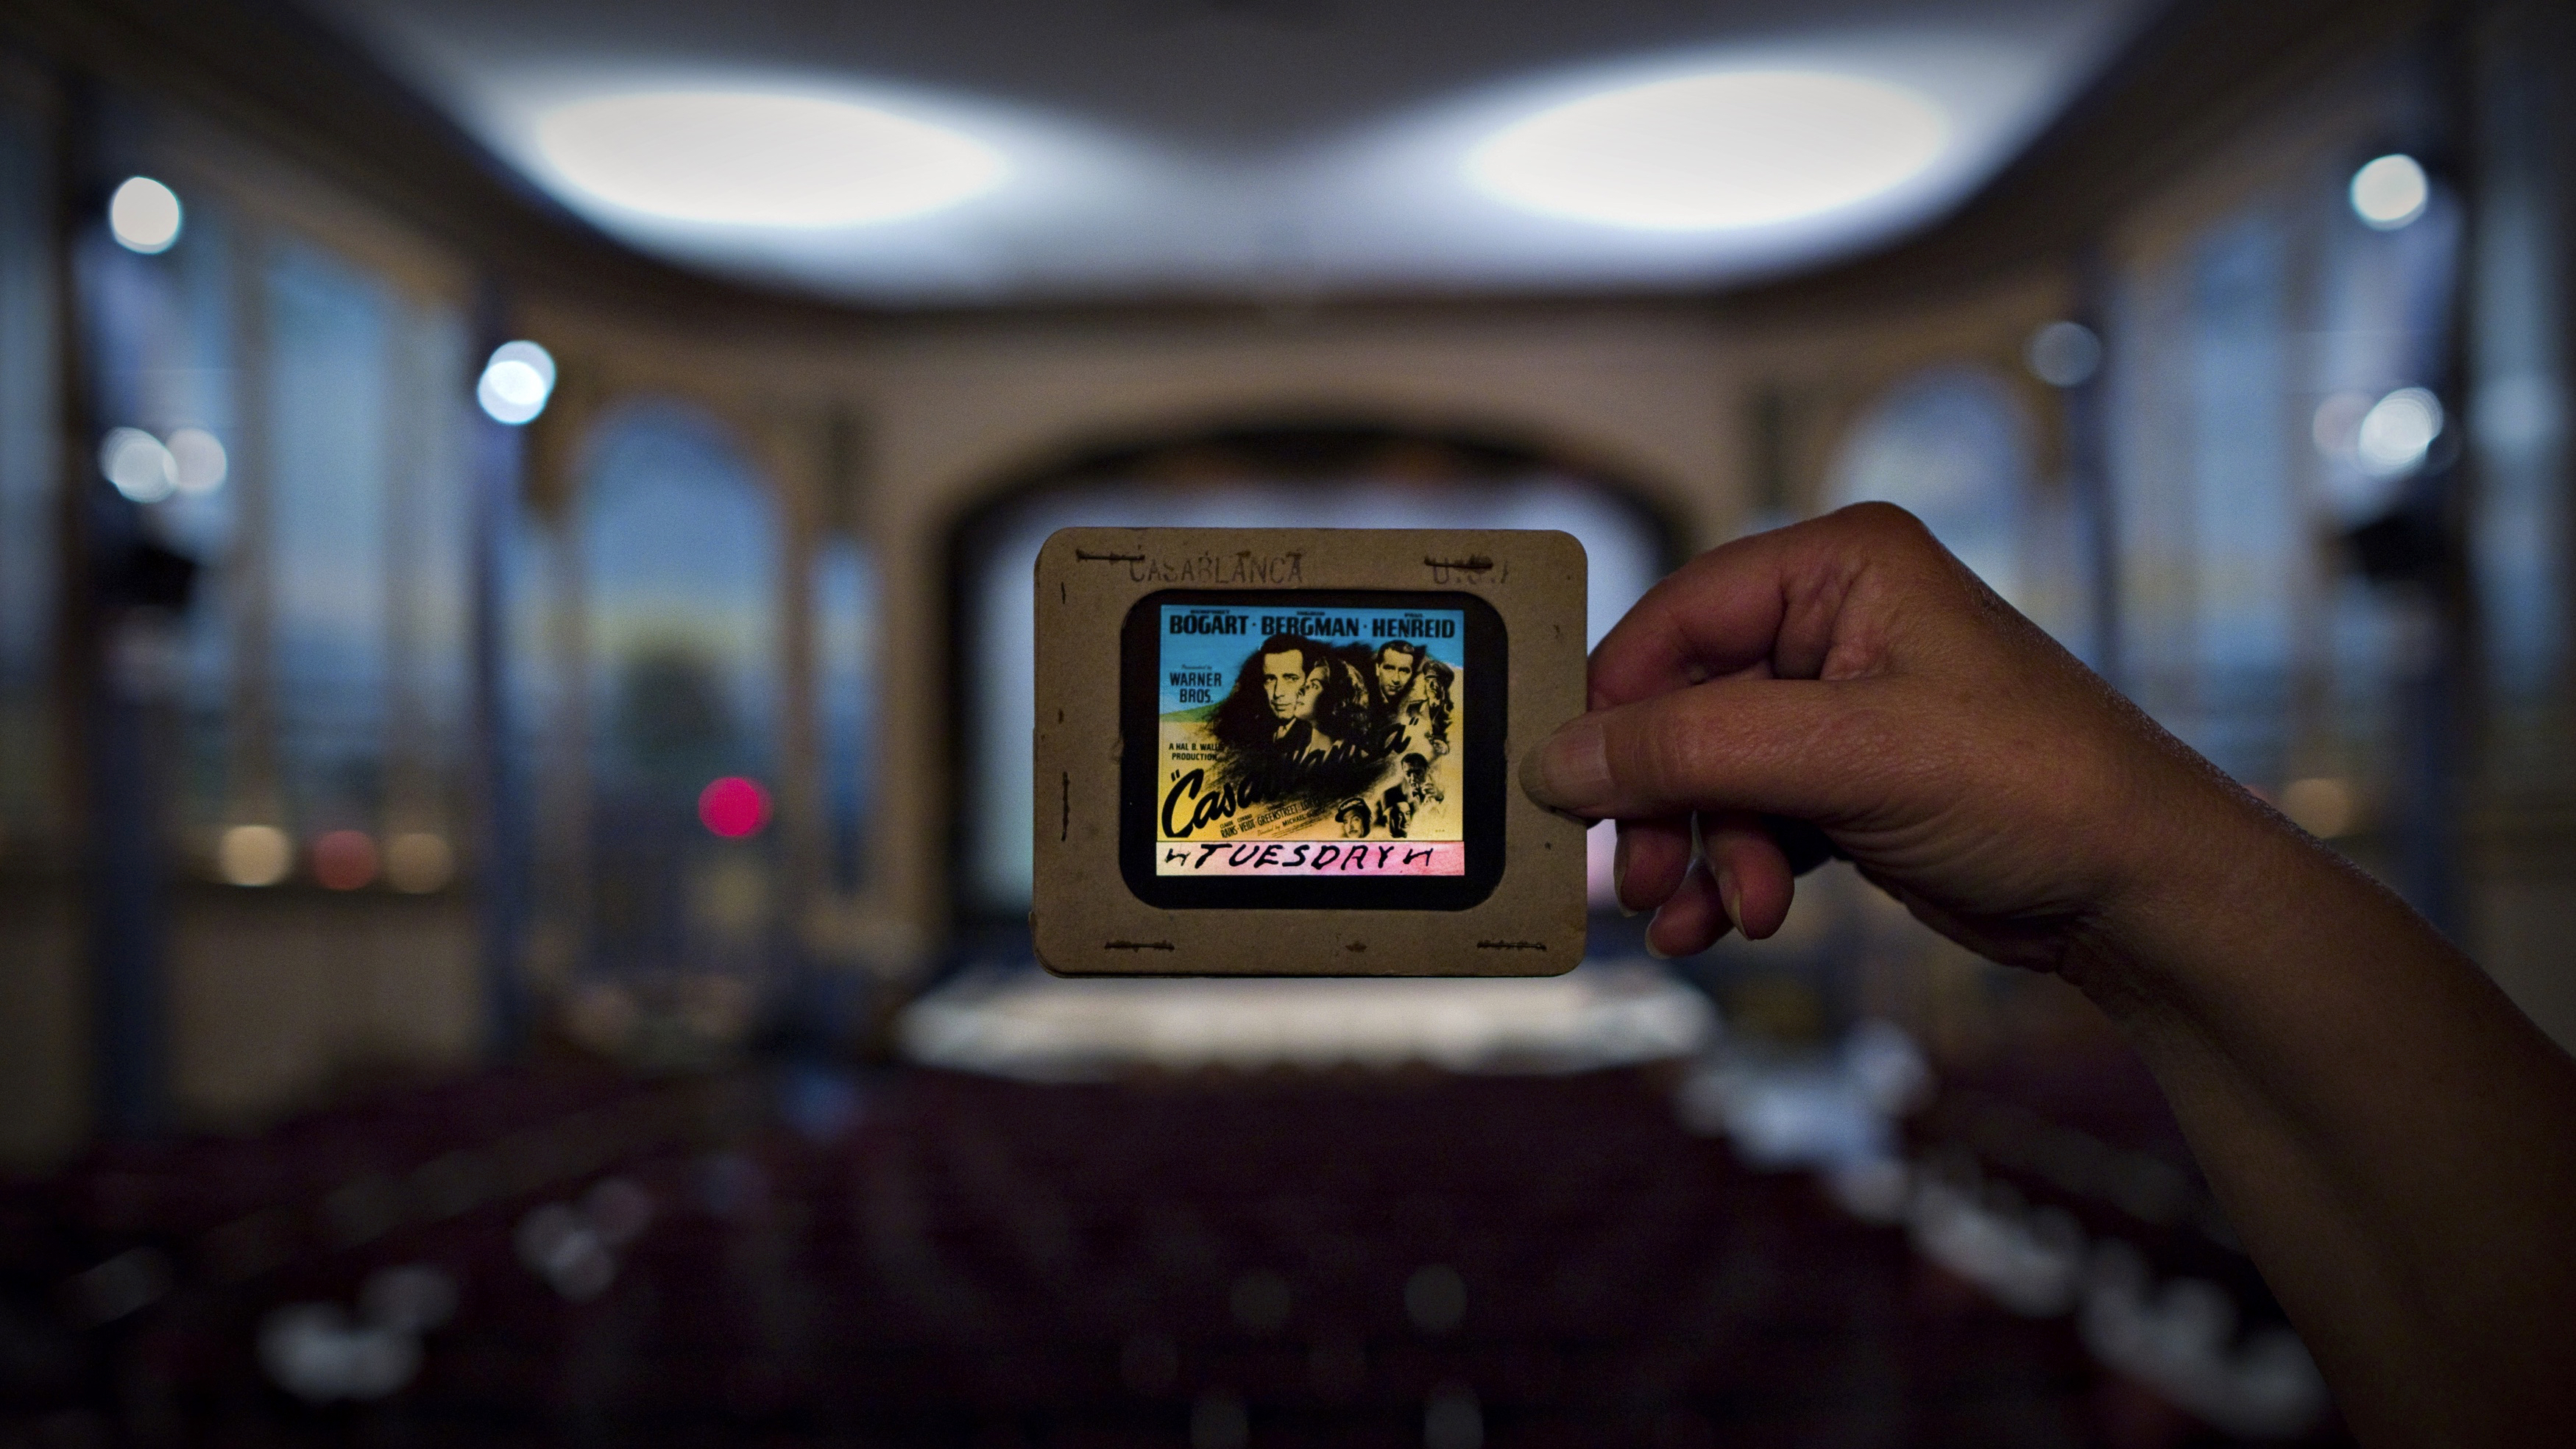 Cinema owner Ann Nelson holds up an original slide from the movie Casablanca inside The Patricia Theatre in Powell River, British Columbia October 31, 2013. The Patricia was founded in 1913 and entertained customers with silent movies, vaudeville shows and even local boxing matches. The venue has been running continuously since it opened, and still hosts a wide variety of entertainment, from cinema to concerts and vaudeville. The Patricia was the first cinema built in Powell River and although others opened up there, none have survived, meaning that the Patricia is both the town's first and last movie theatre. Picture taken October 31, 2013. REUTERS/Andy Clark    (CANADA - Tags: ENTERTAINMENT SOCIETY)  ATTENTION EDITORS: PICTURE 09 OF 28 FOR PACKAGE 'THE FIRST AND LAST MOVIE THEATRE'  TO FIND ALL IMAGES SEARCH 'PATRICIA CLARK' - RTX15TI8